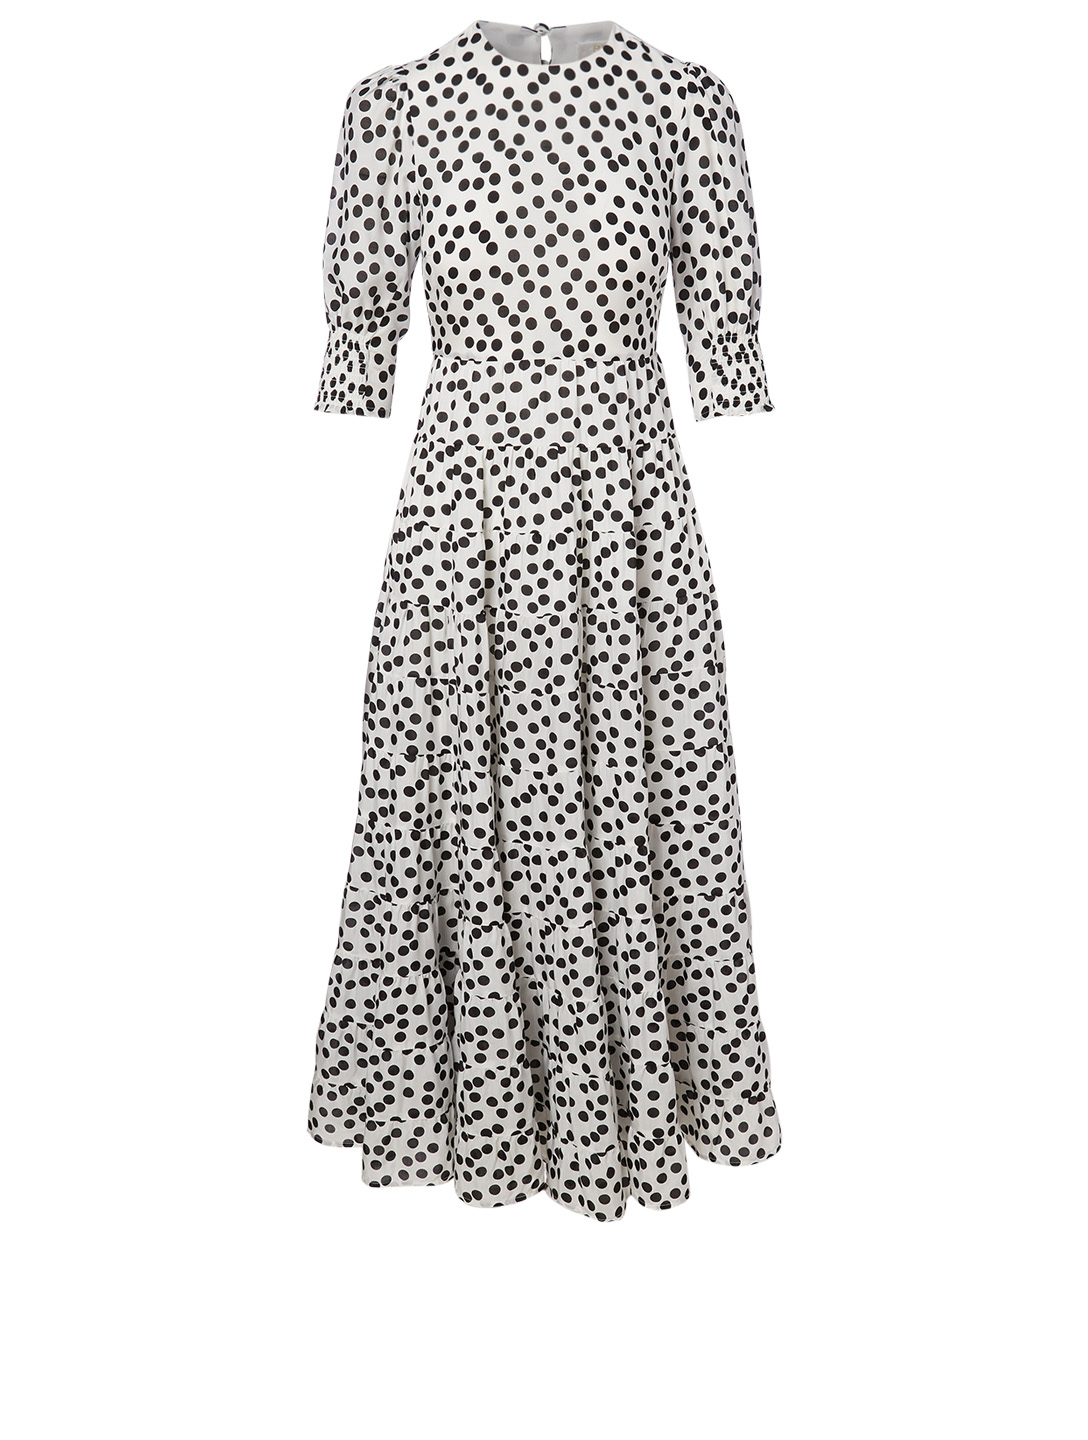 RIXO Agyness Silk-Blend Dress In Polka Dot Print Women's Black